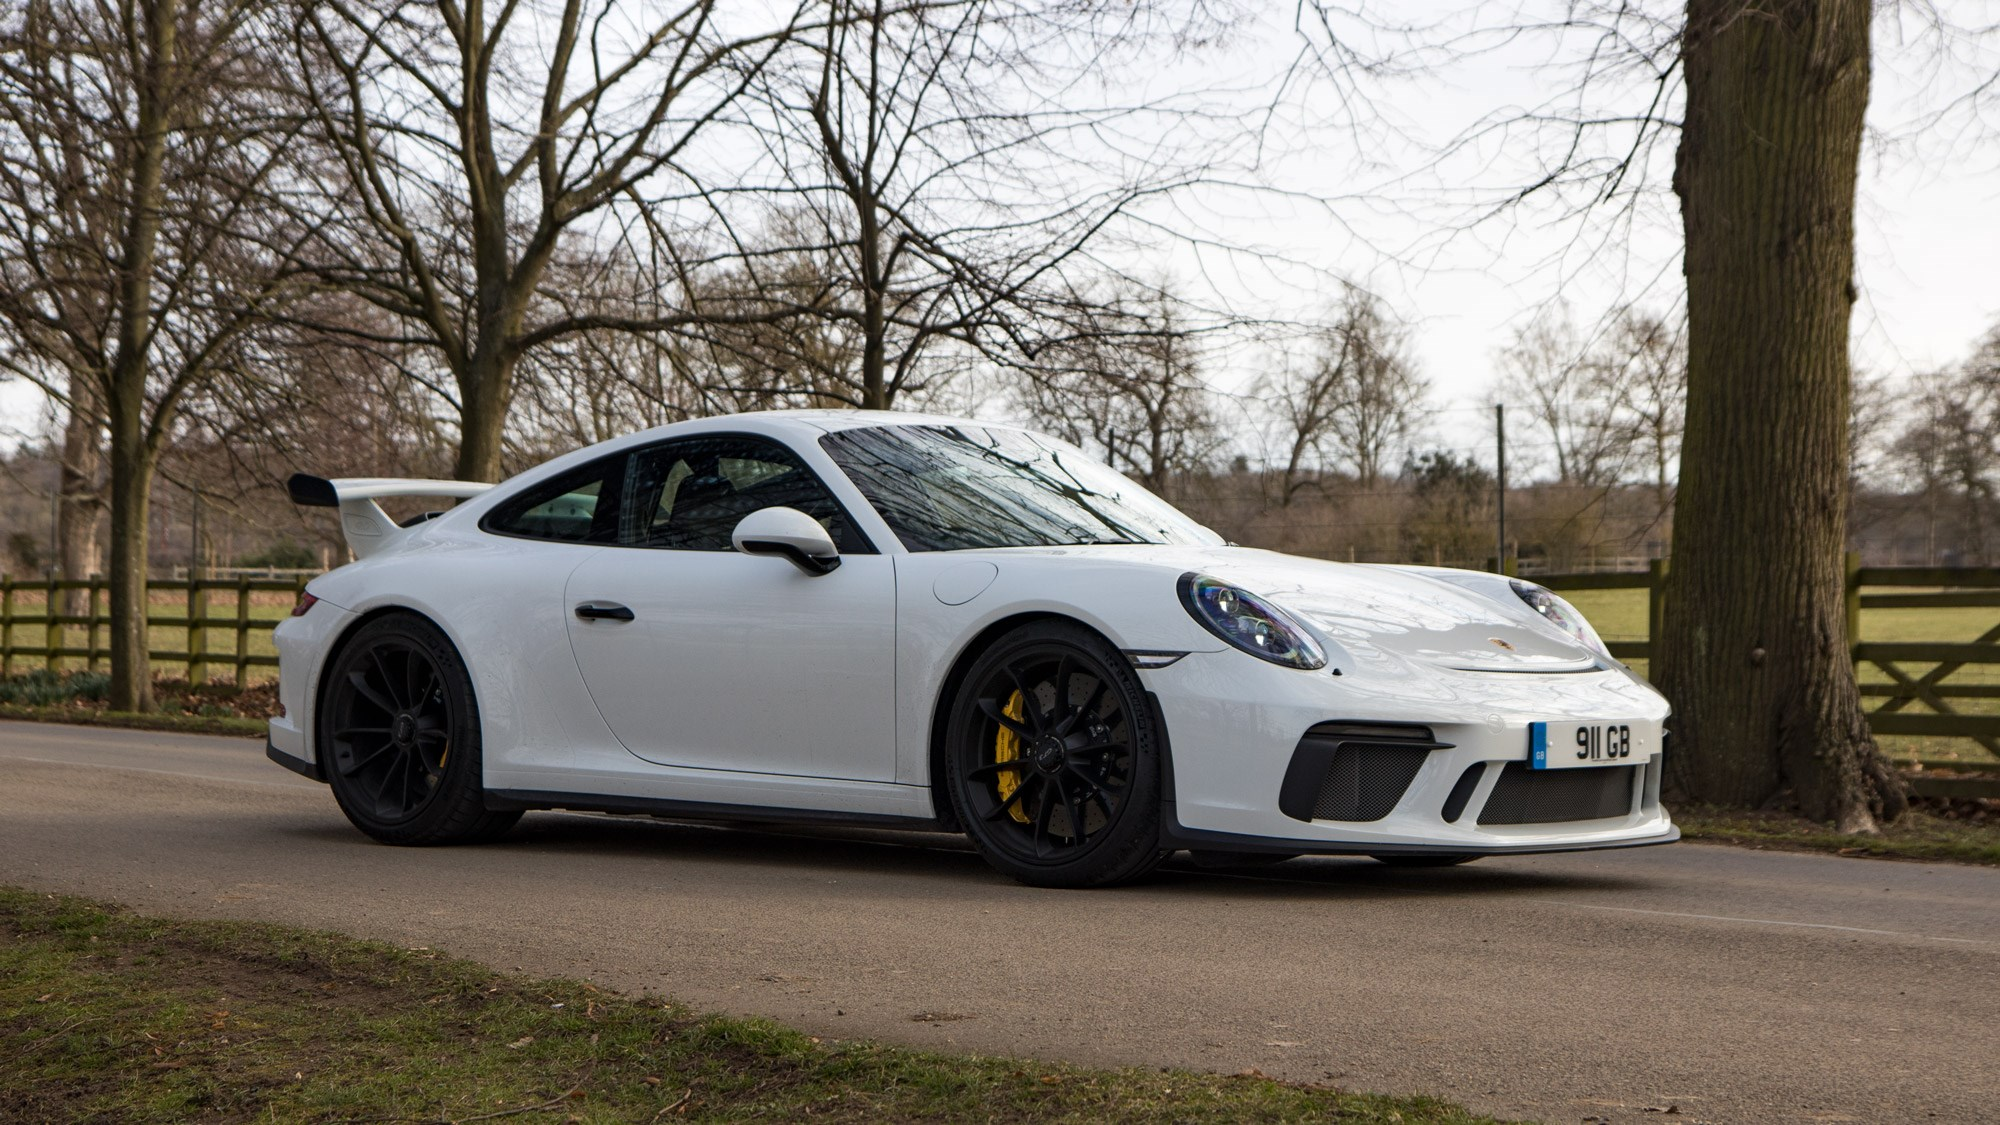 2018 Porsche 911 Gt3 >> Porsche 911 Gt3 Review The Most Involving 911 Ever Goes Manual